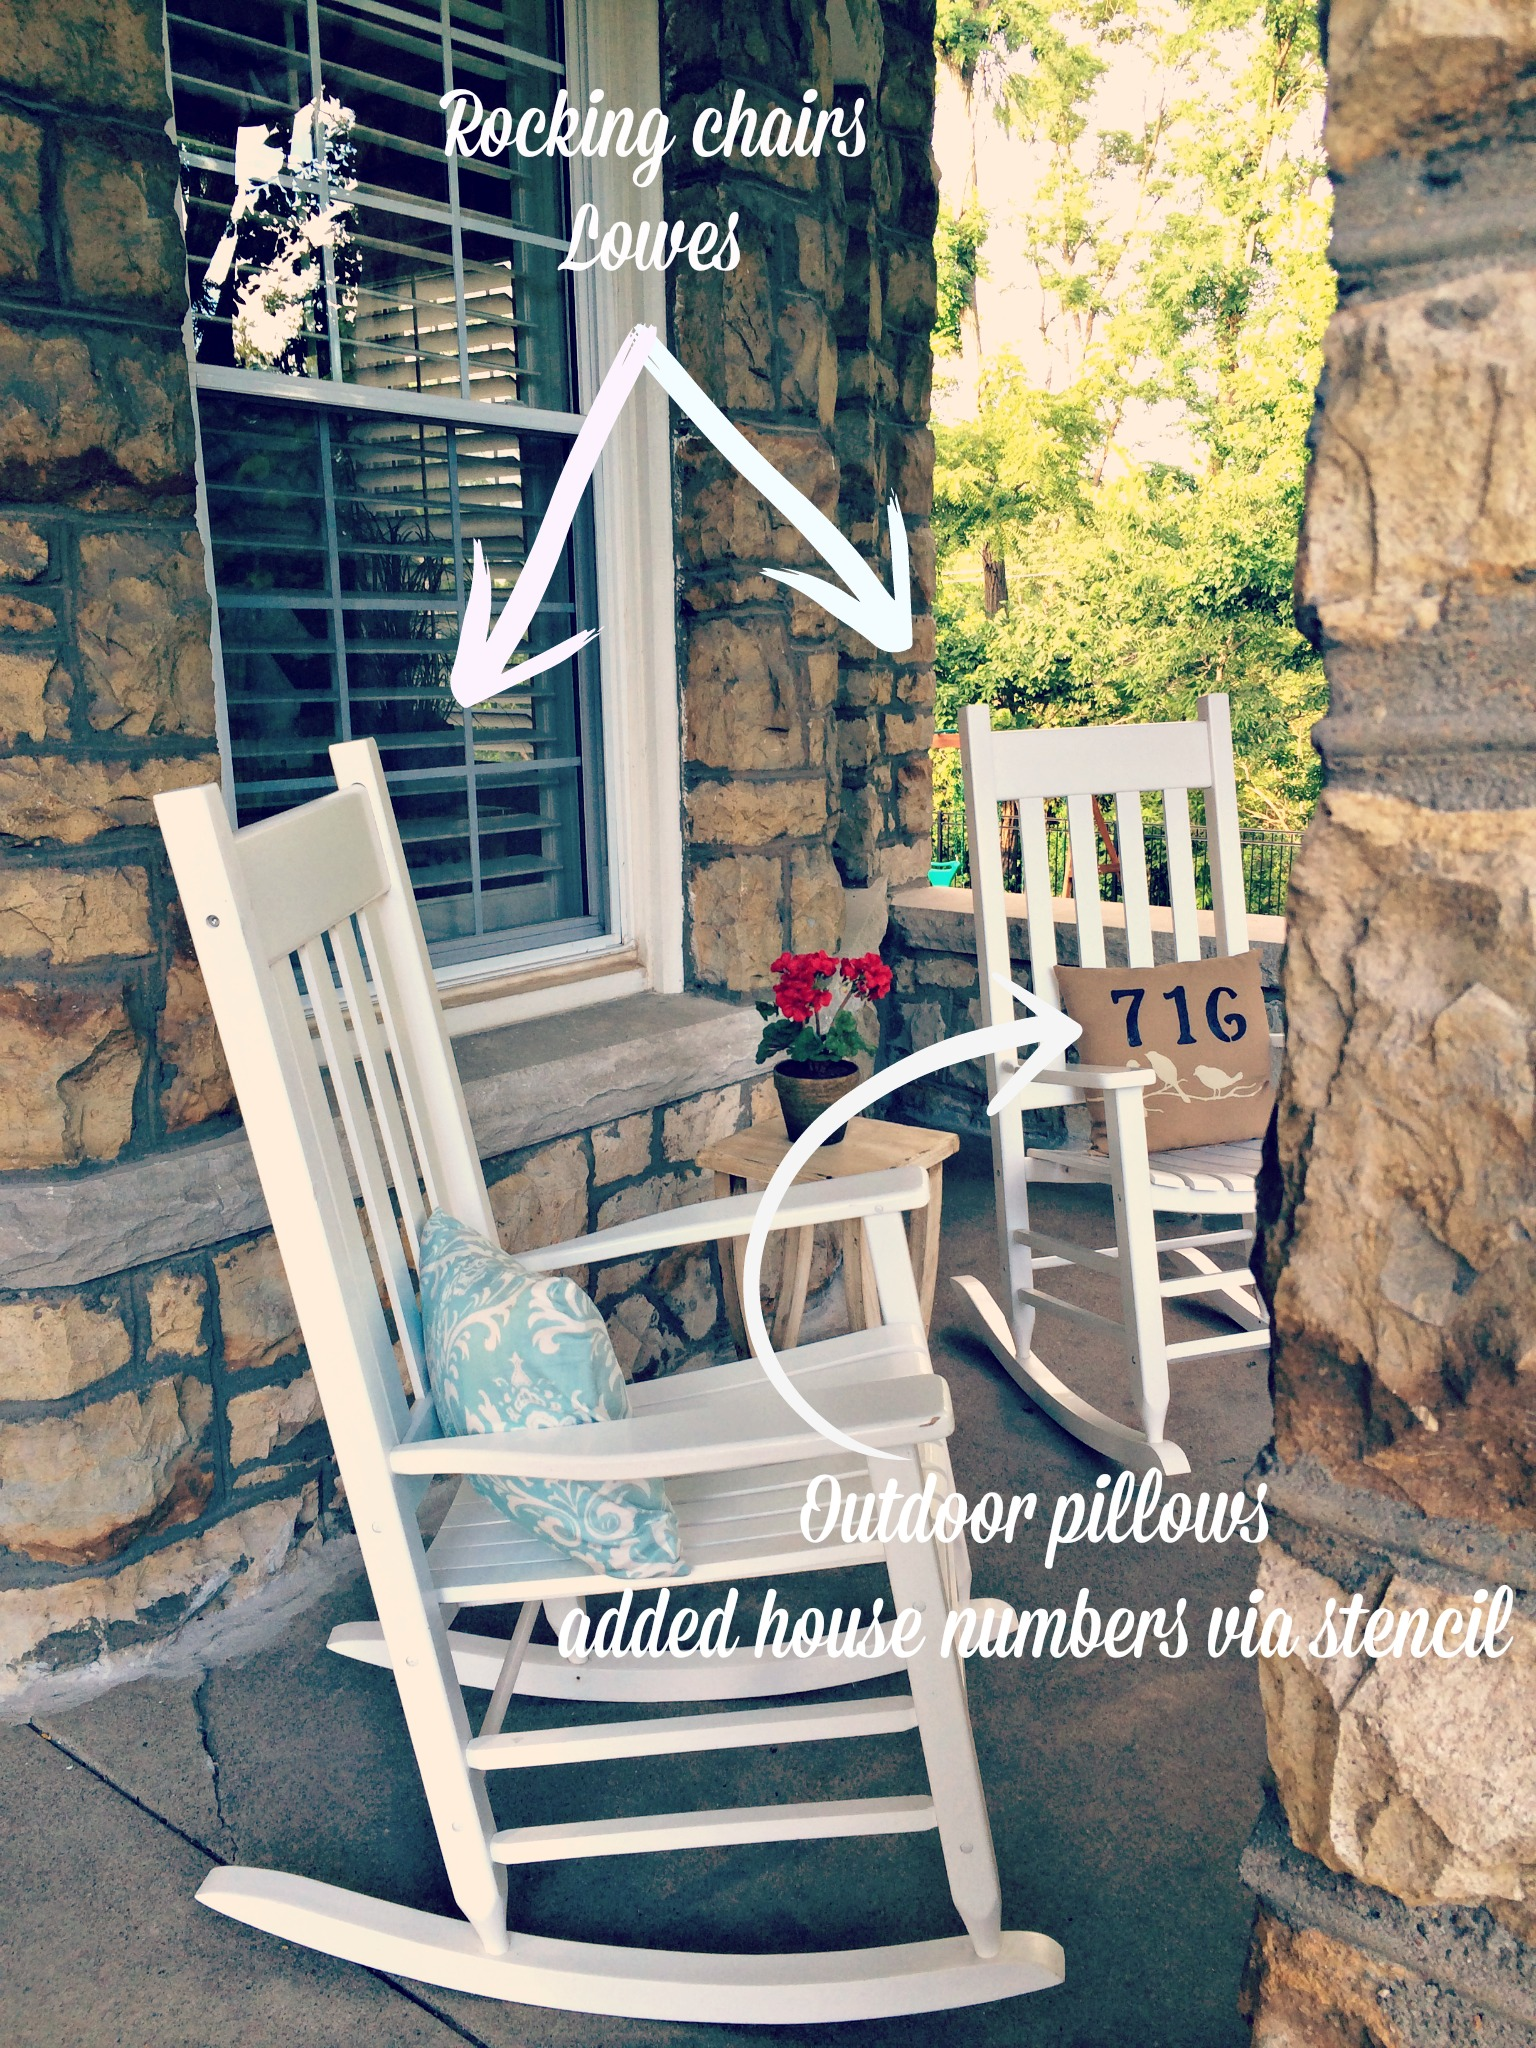 Anatomy of an American porch